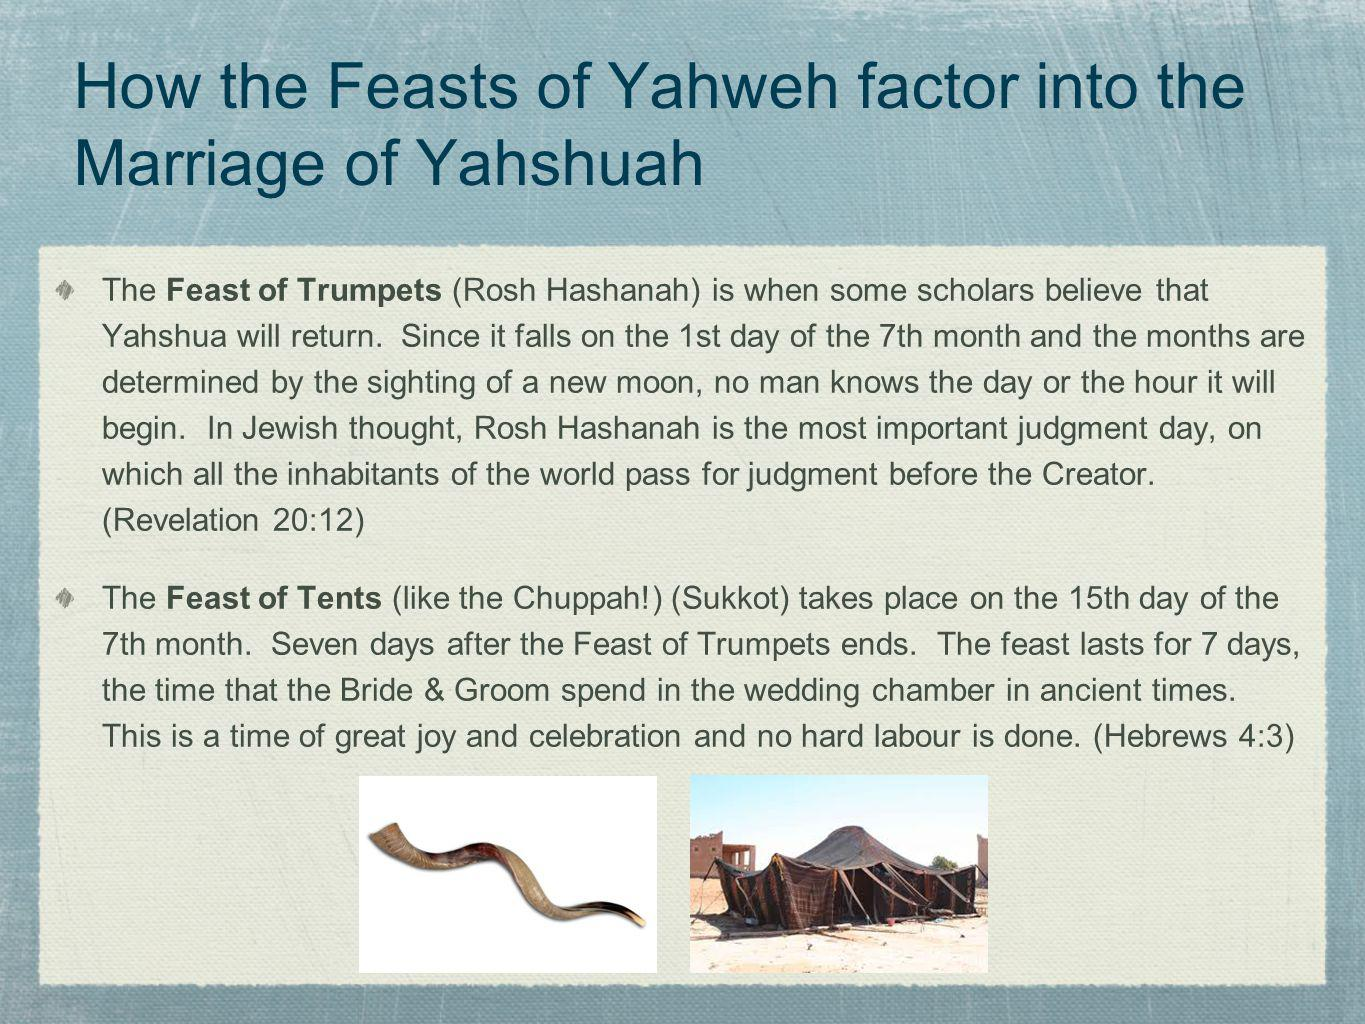 How the Feasts of Yahweh factor into the Marriage of Yahshuah